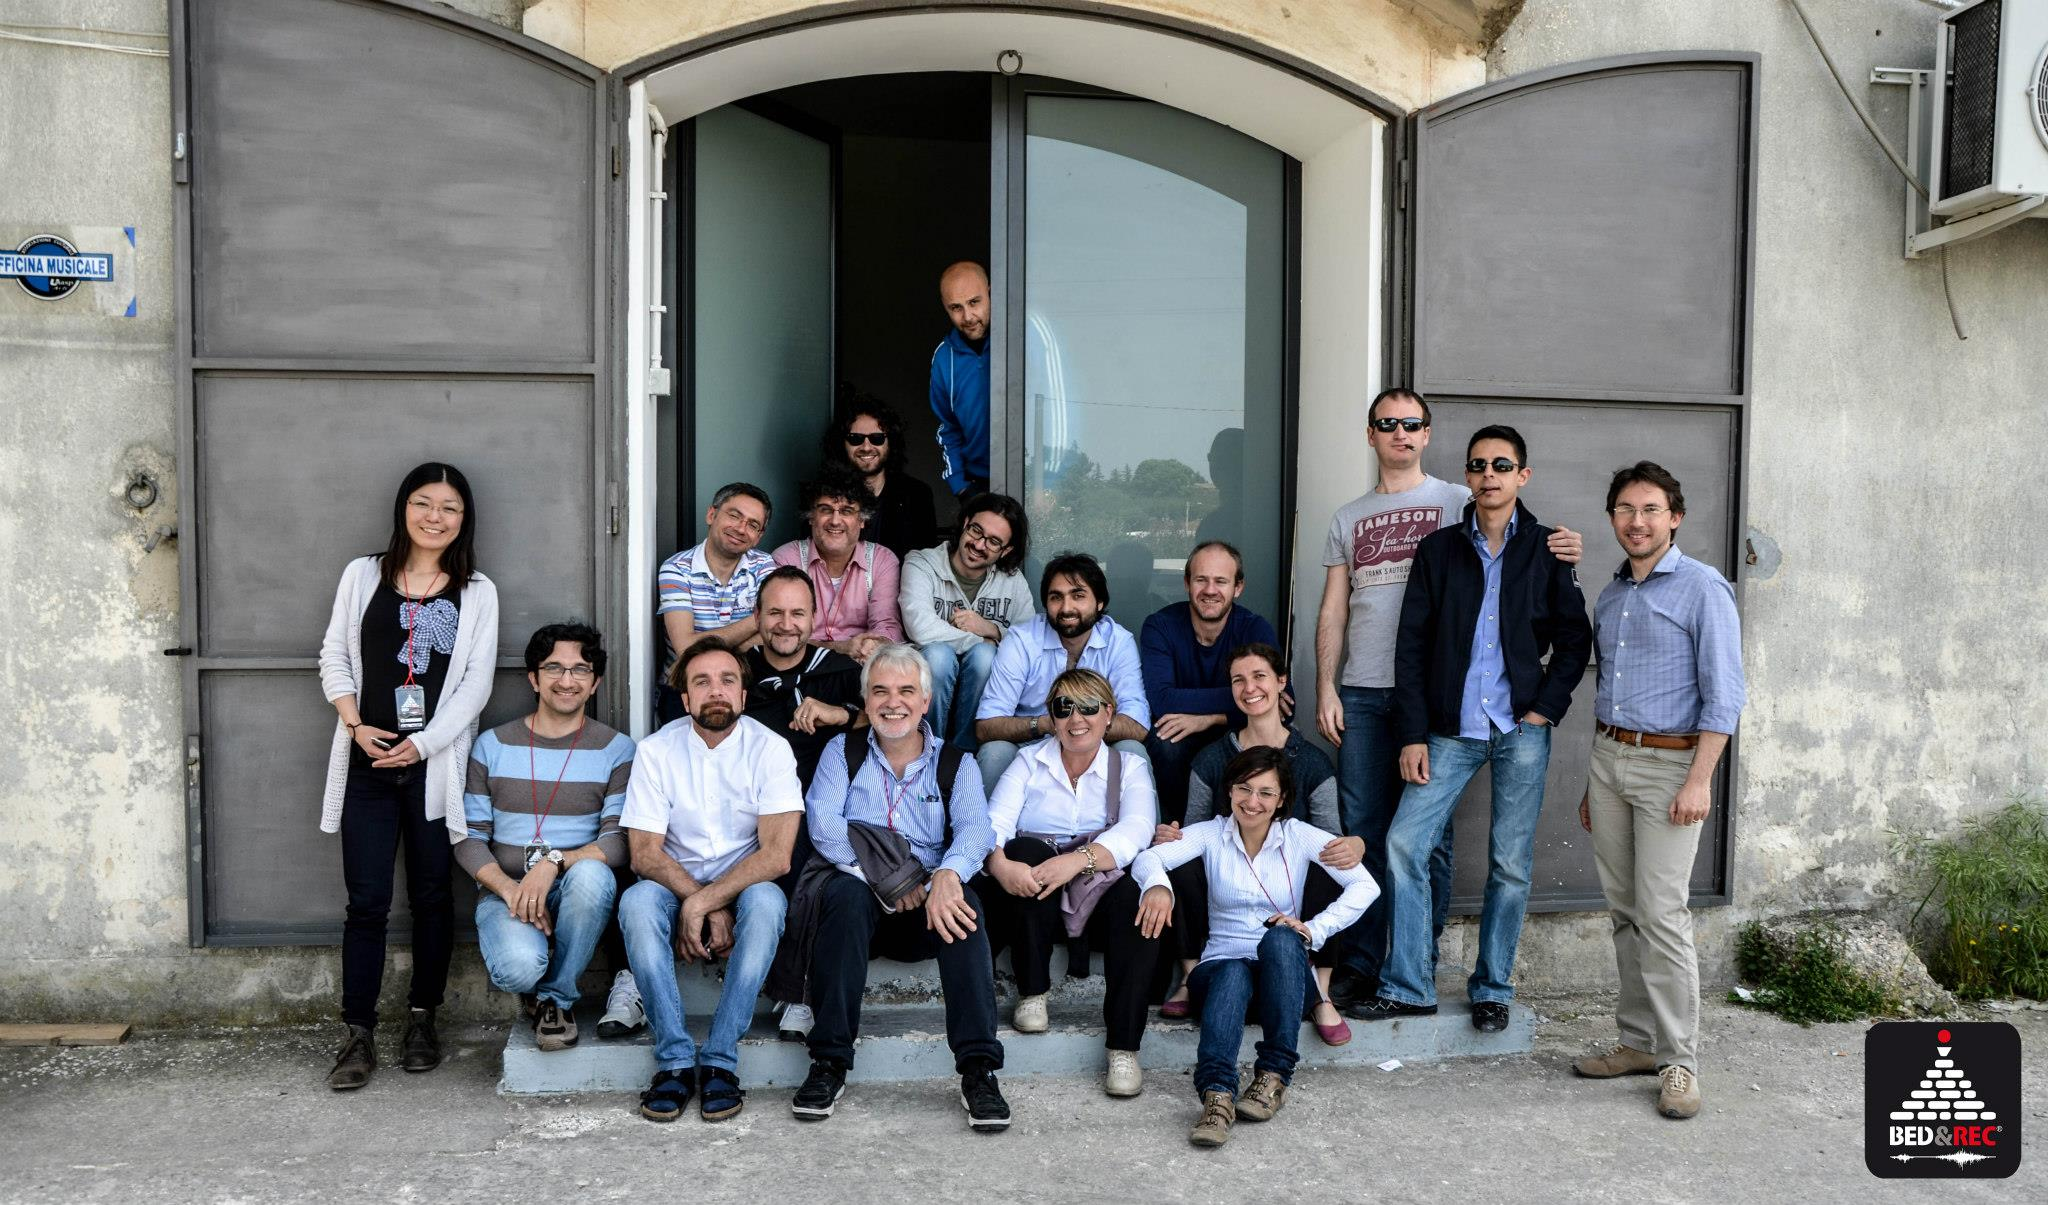 Cappella Musicale Corradiana - Studio Session - Bed&Rec - Officina Musicale